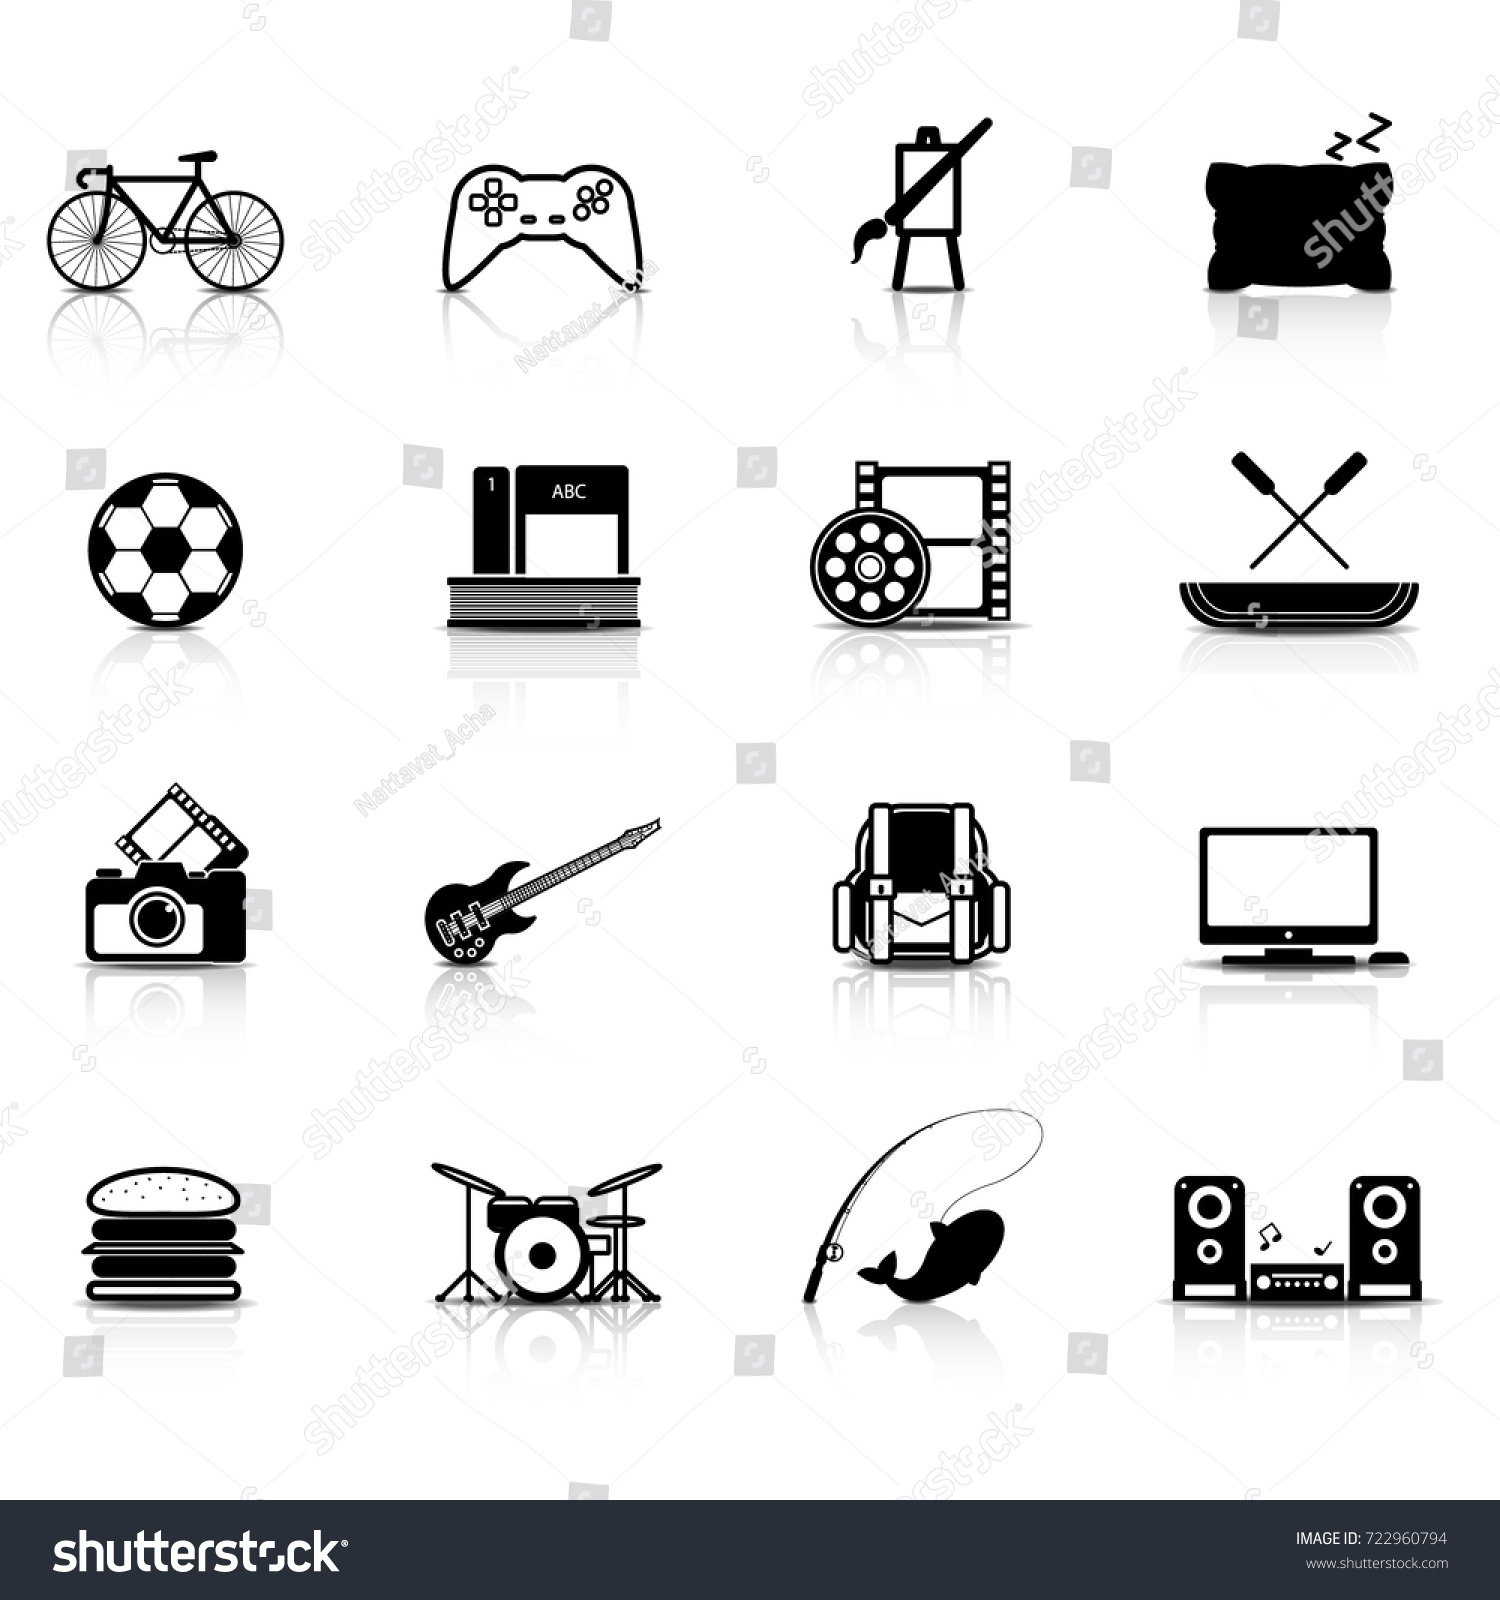 Hobby Clip Art, PNG, 800x800px, Hobby, Black, Black And White, Brand,  Communication Download Free